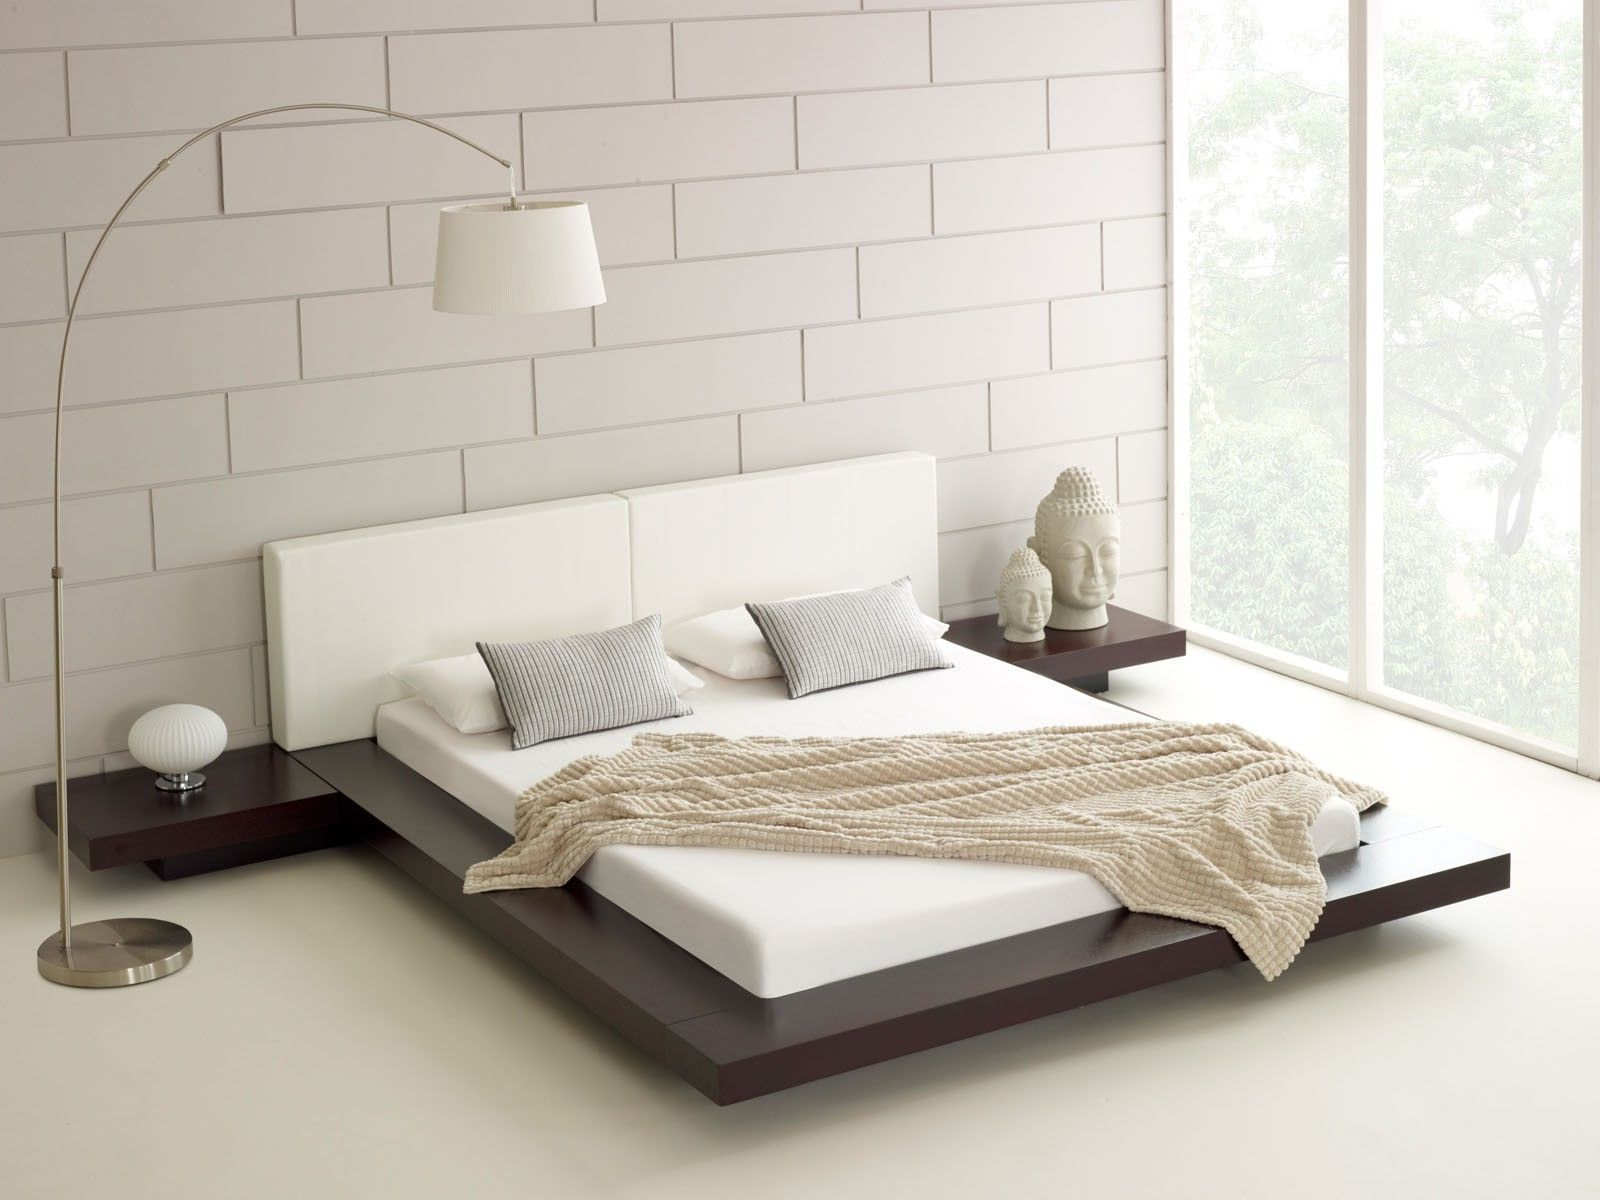 Contemporary white japanese bed design with unique white for Bedroom bed designs images